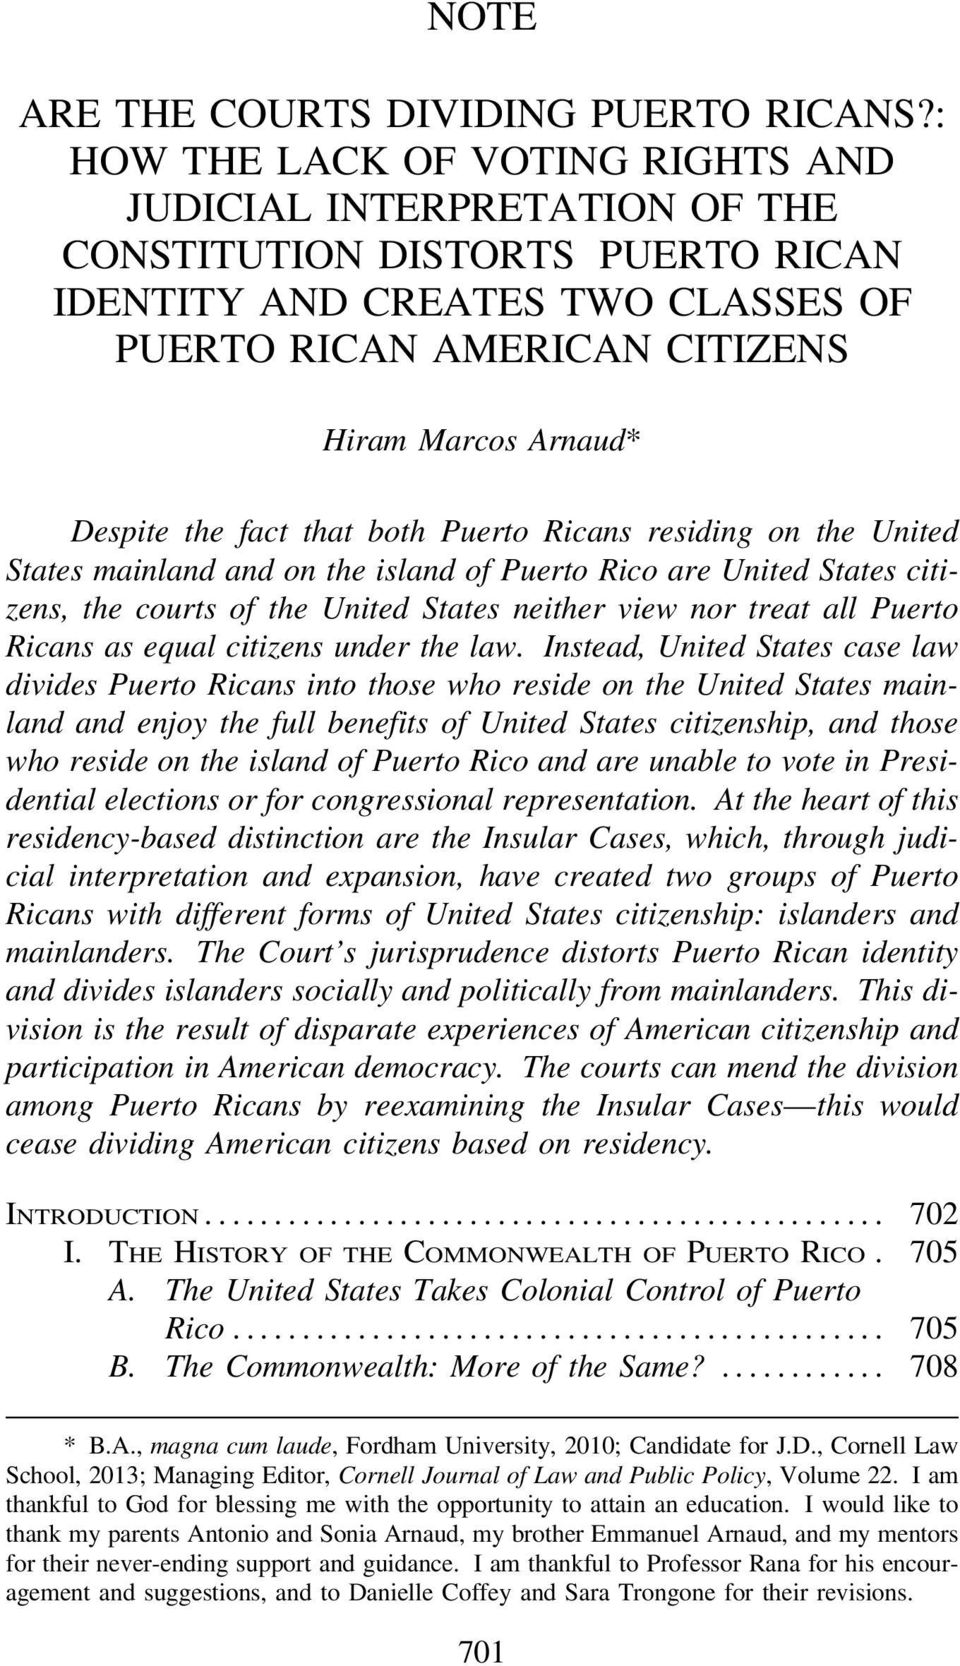 the fact that both Puerto Ricans residing on the United States mainland and on the island of Puerto Rico are United States citizens, the courts of the United States neither view nor treat all Puerto